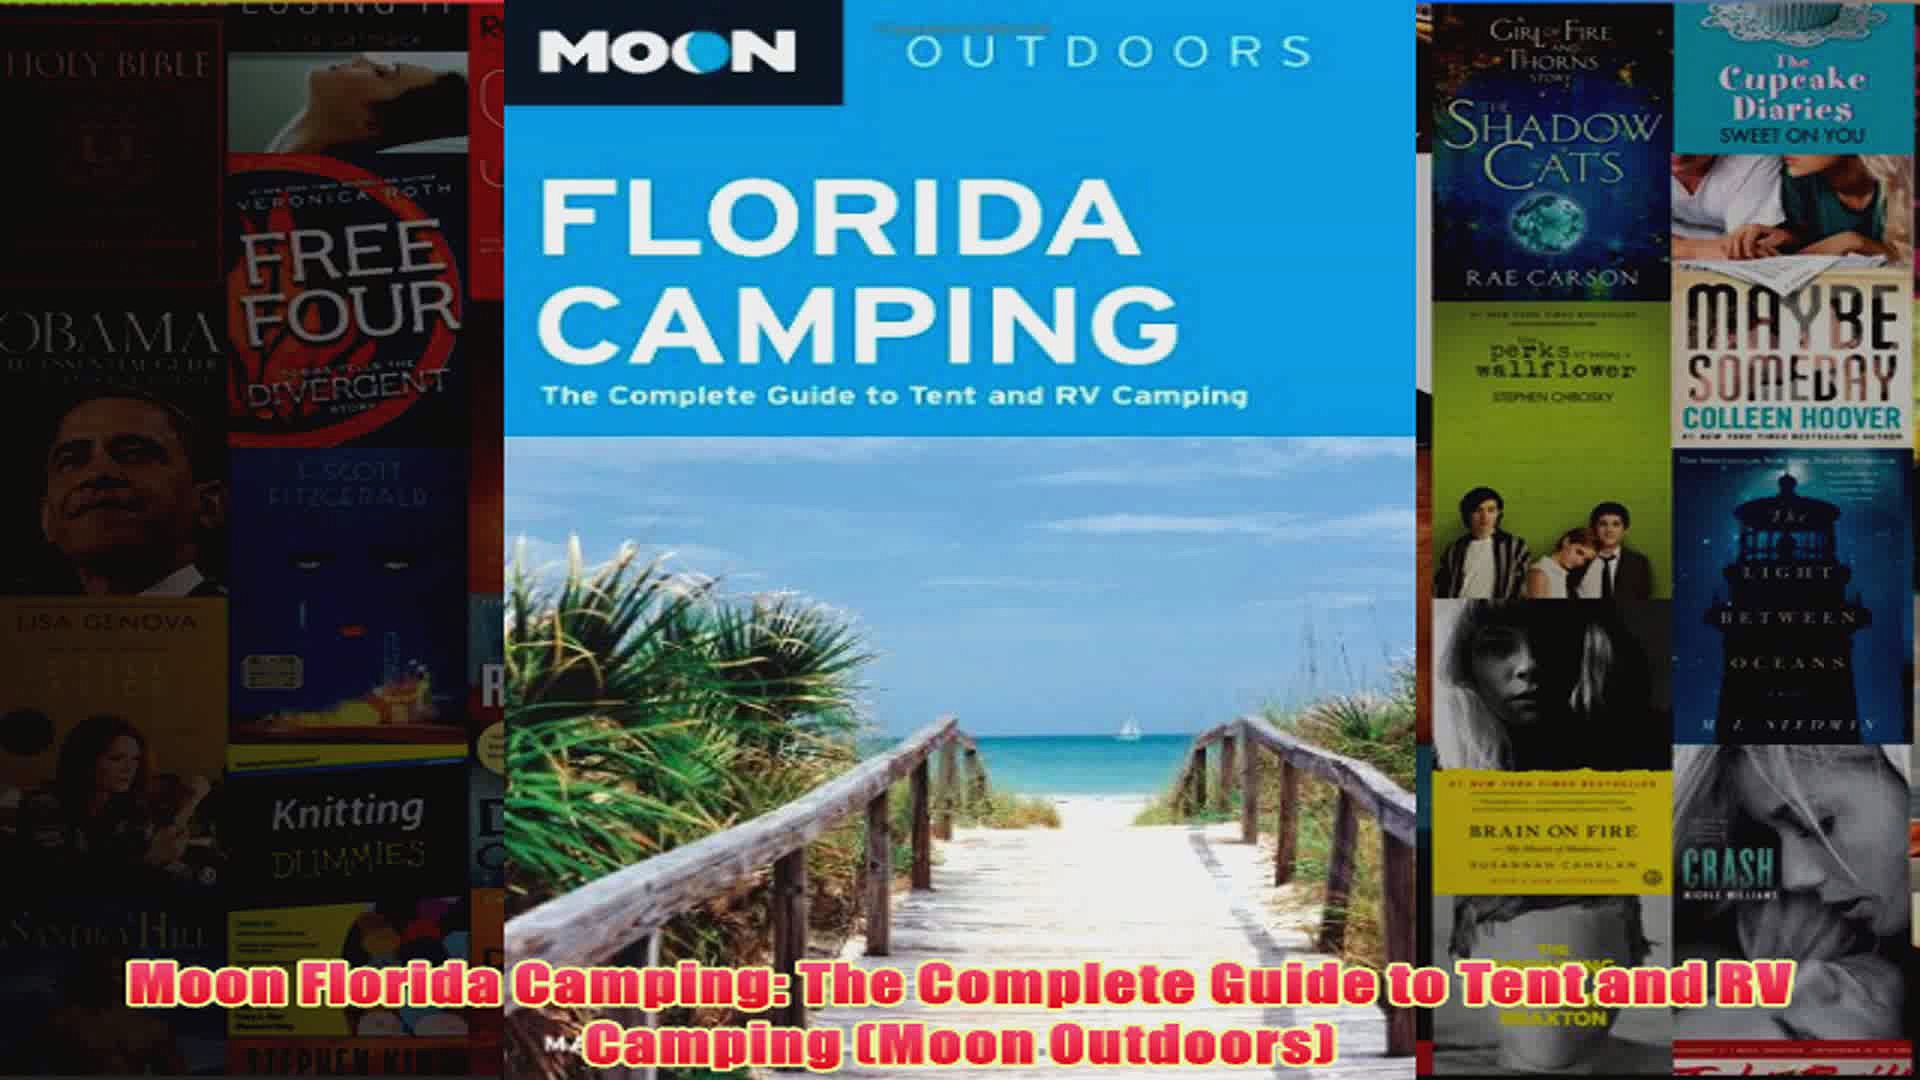 Moon Florida Camping The Complete Guide to Tent and RV Camping Moon Outdoors